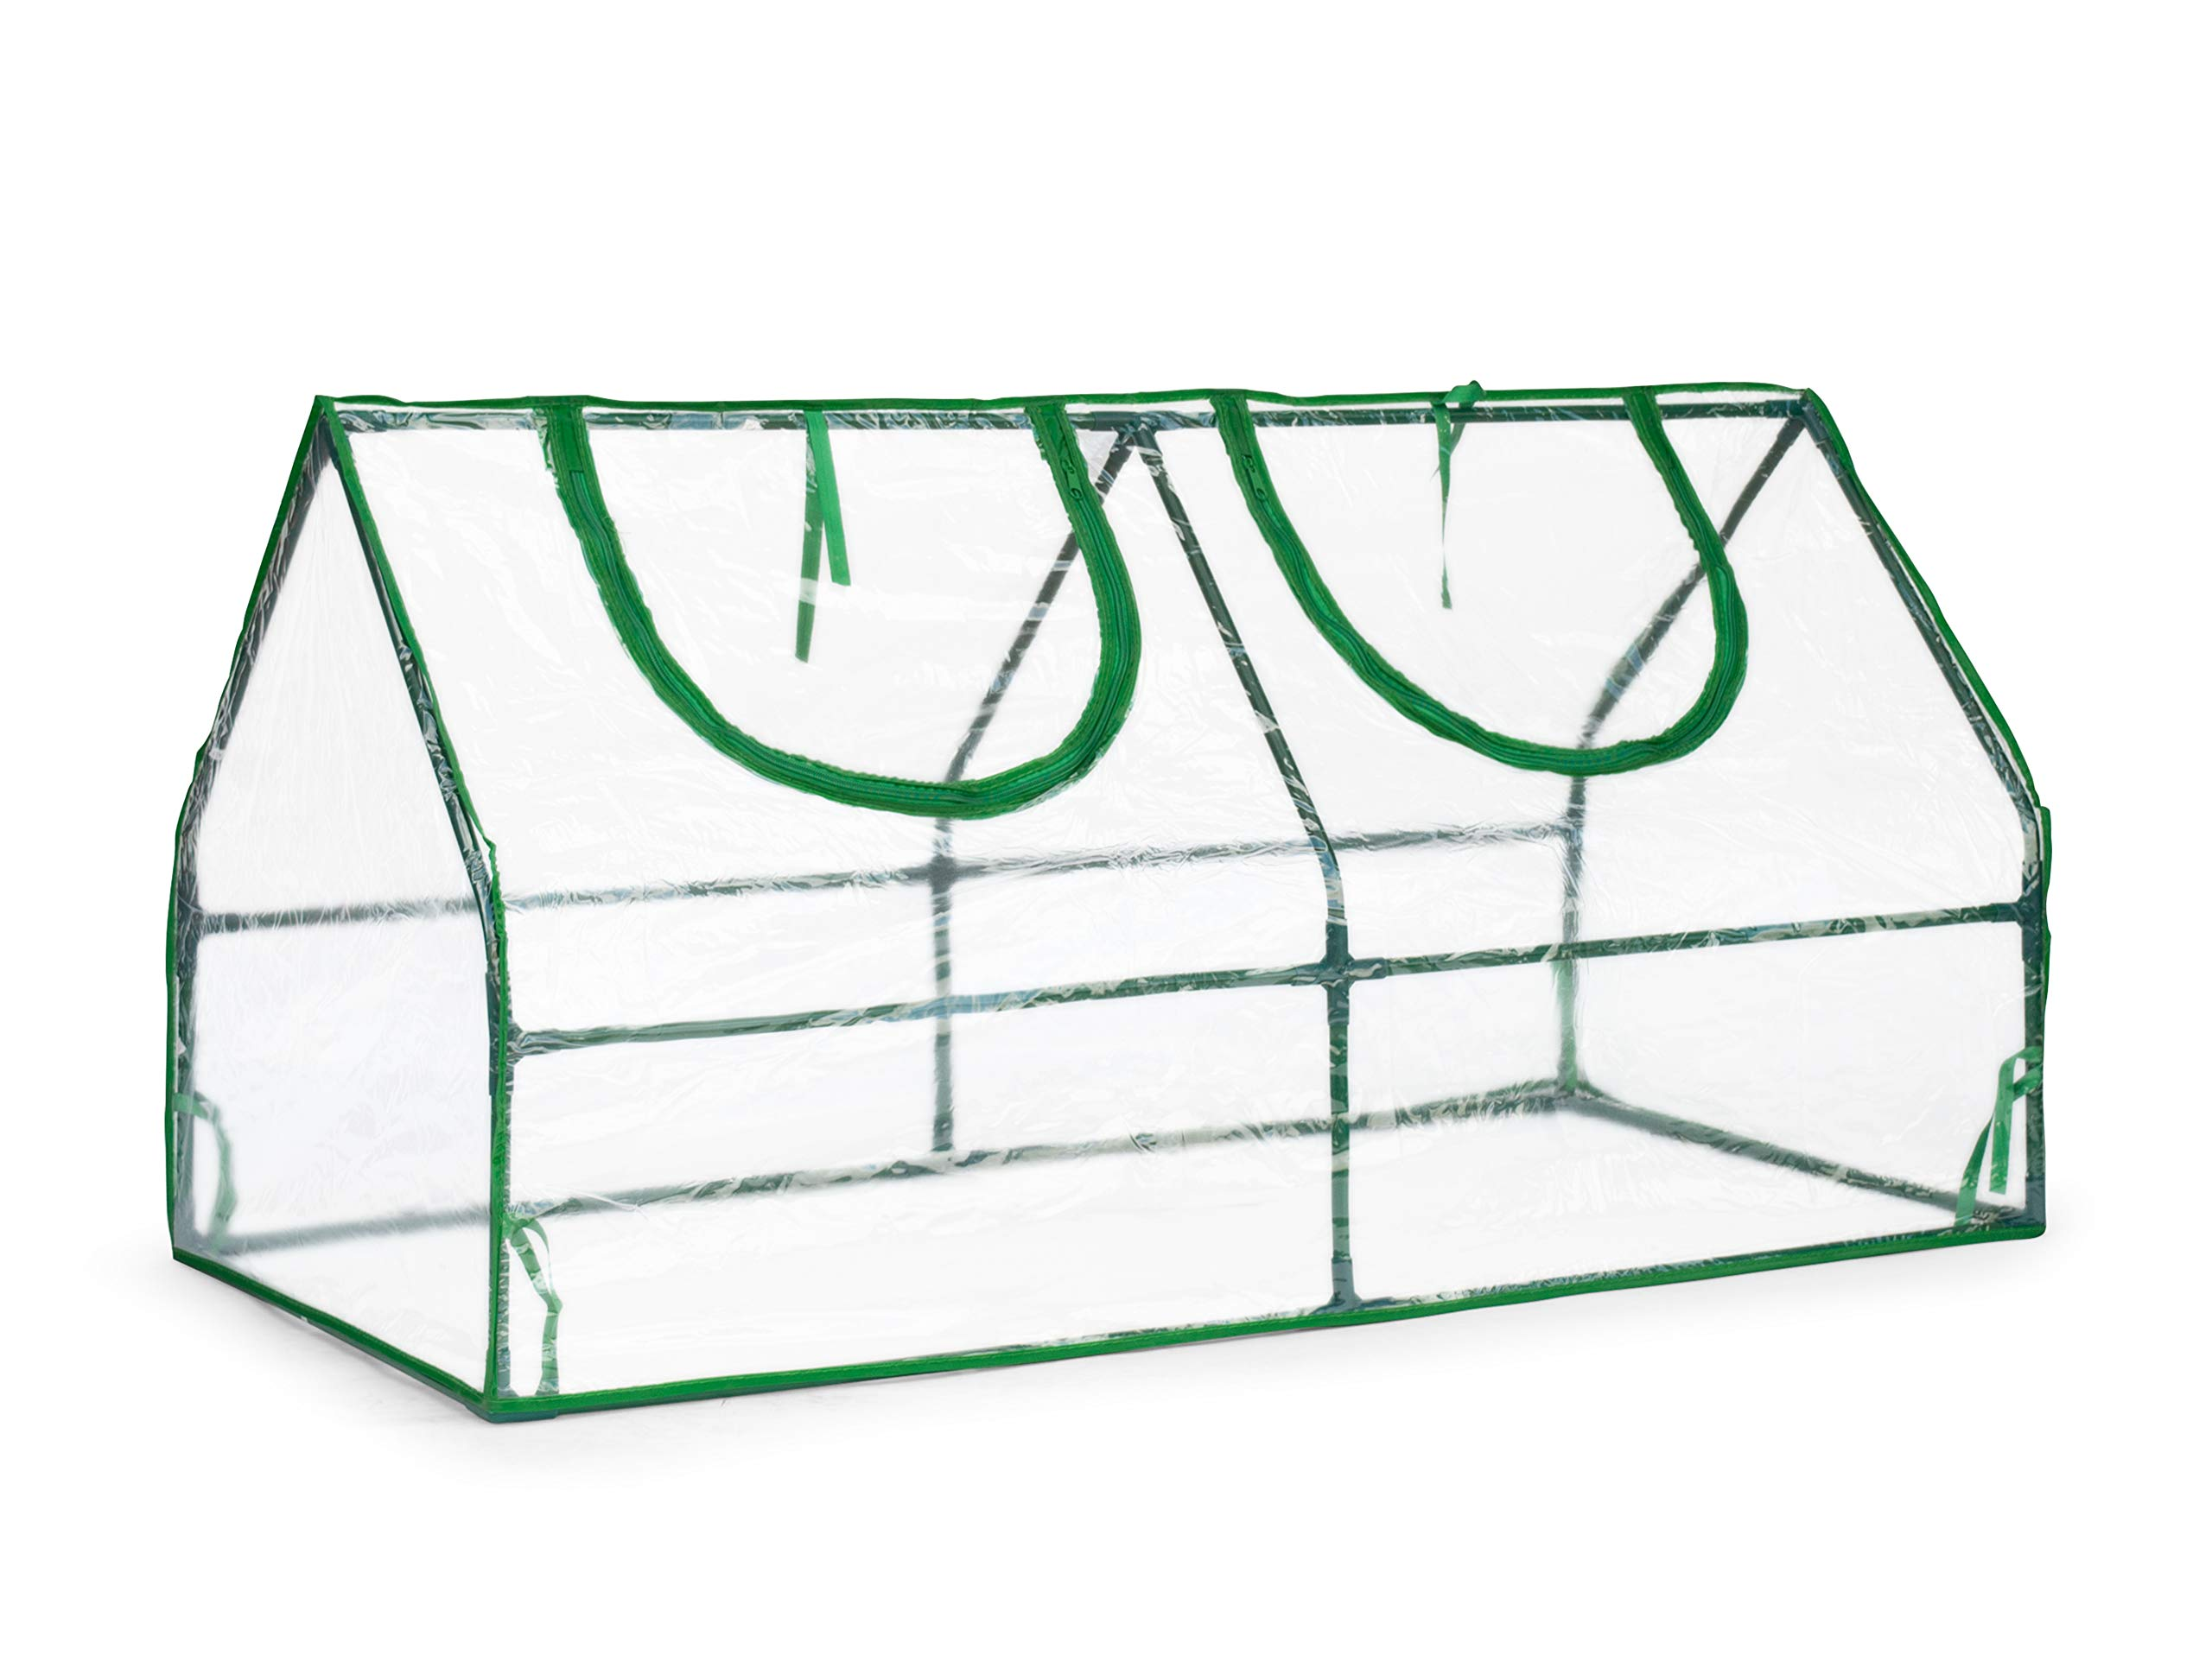 Topline Outdoor Mini Garden Greenhouse with Zipper Openings - 47 Inch